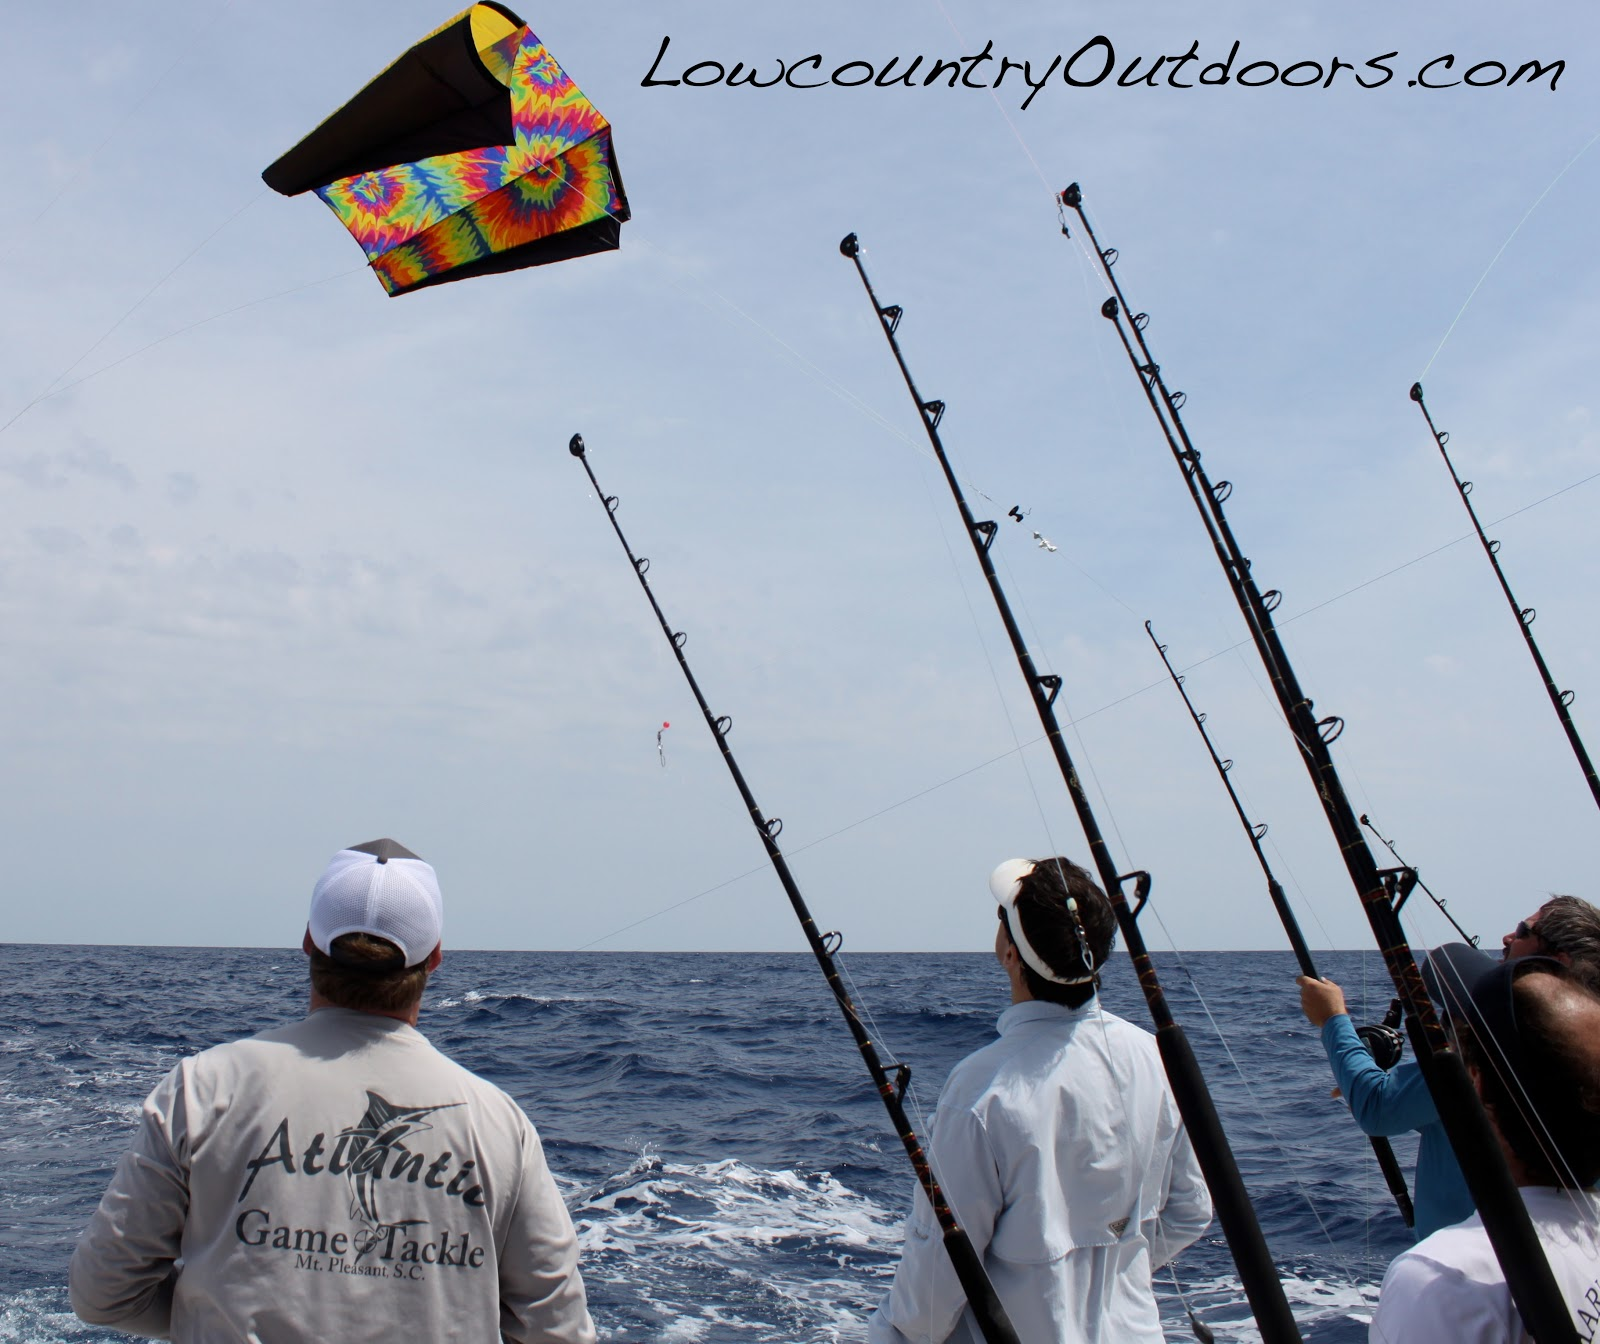 Lowcountry outdoors blue marlin release for lil 39 bit on for Kite fishing for tuna